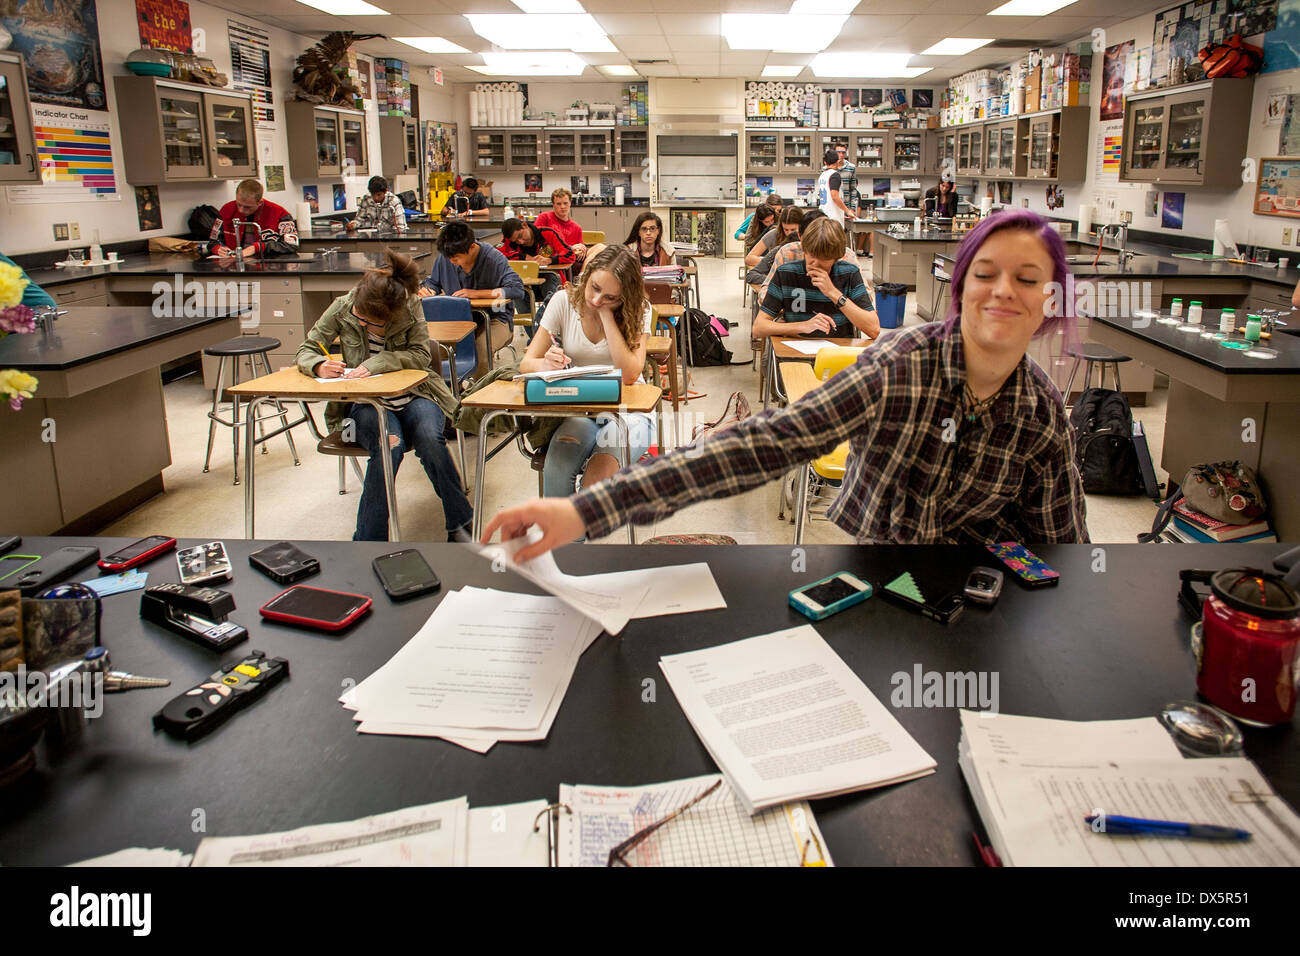 A high school chemistry student in San Clemente, CA, turns in her exam paper. Note cell phones placed on desk to avoid distraction. - Stock Image